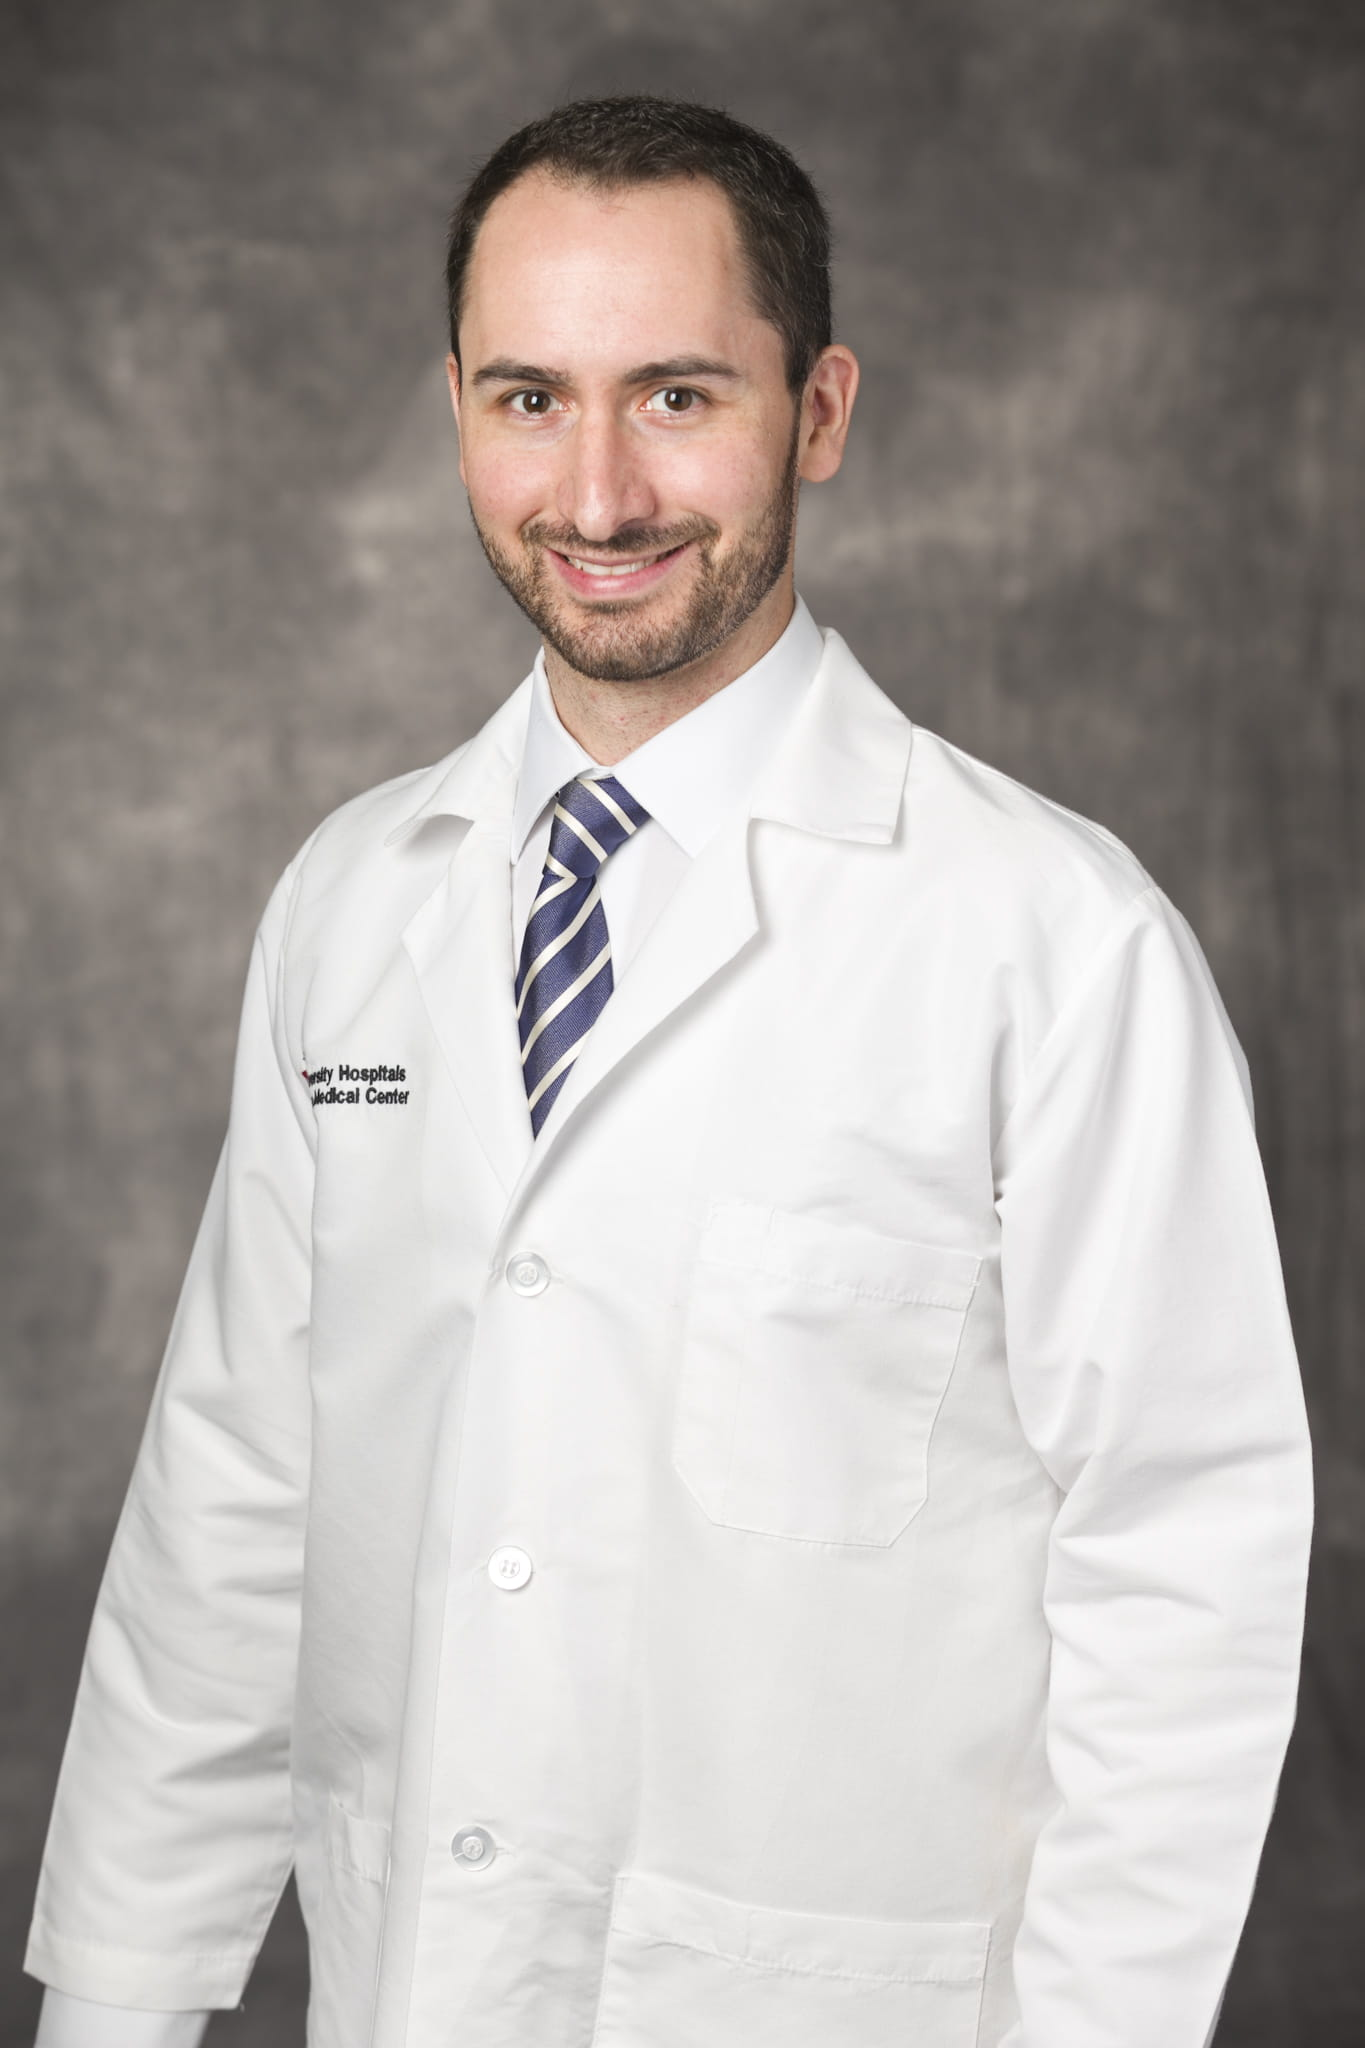 Kenneth Rodriquez, MD